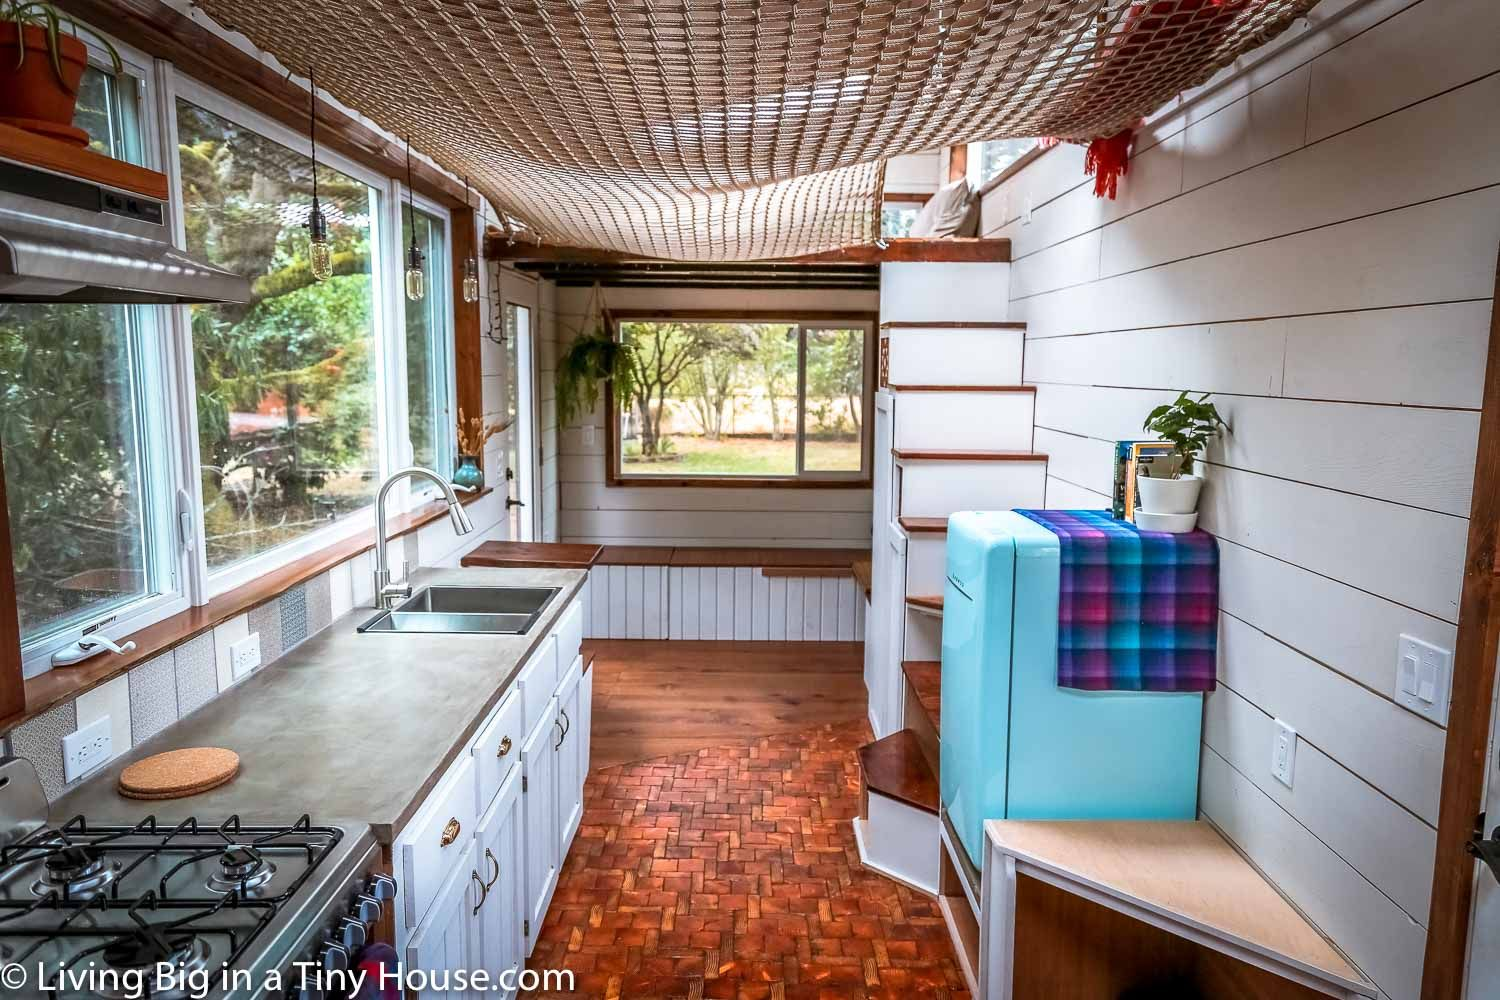 Amazing DIY Tiny House With Super Cool